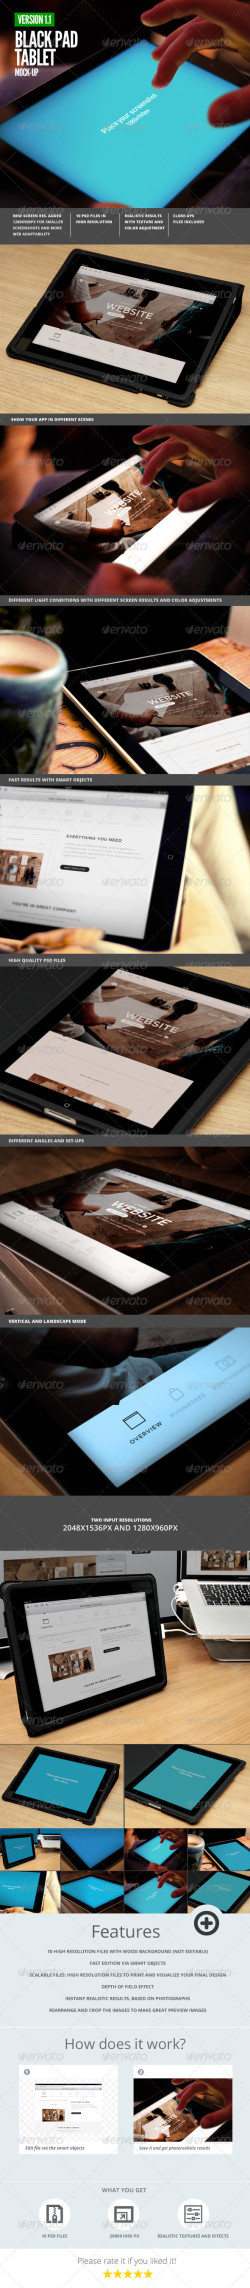 tablet-app-black-pad-mock-up-preview